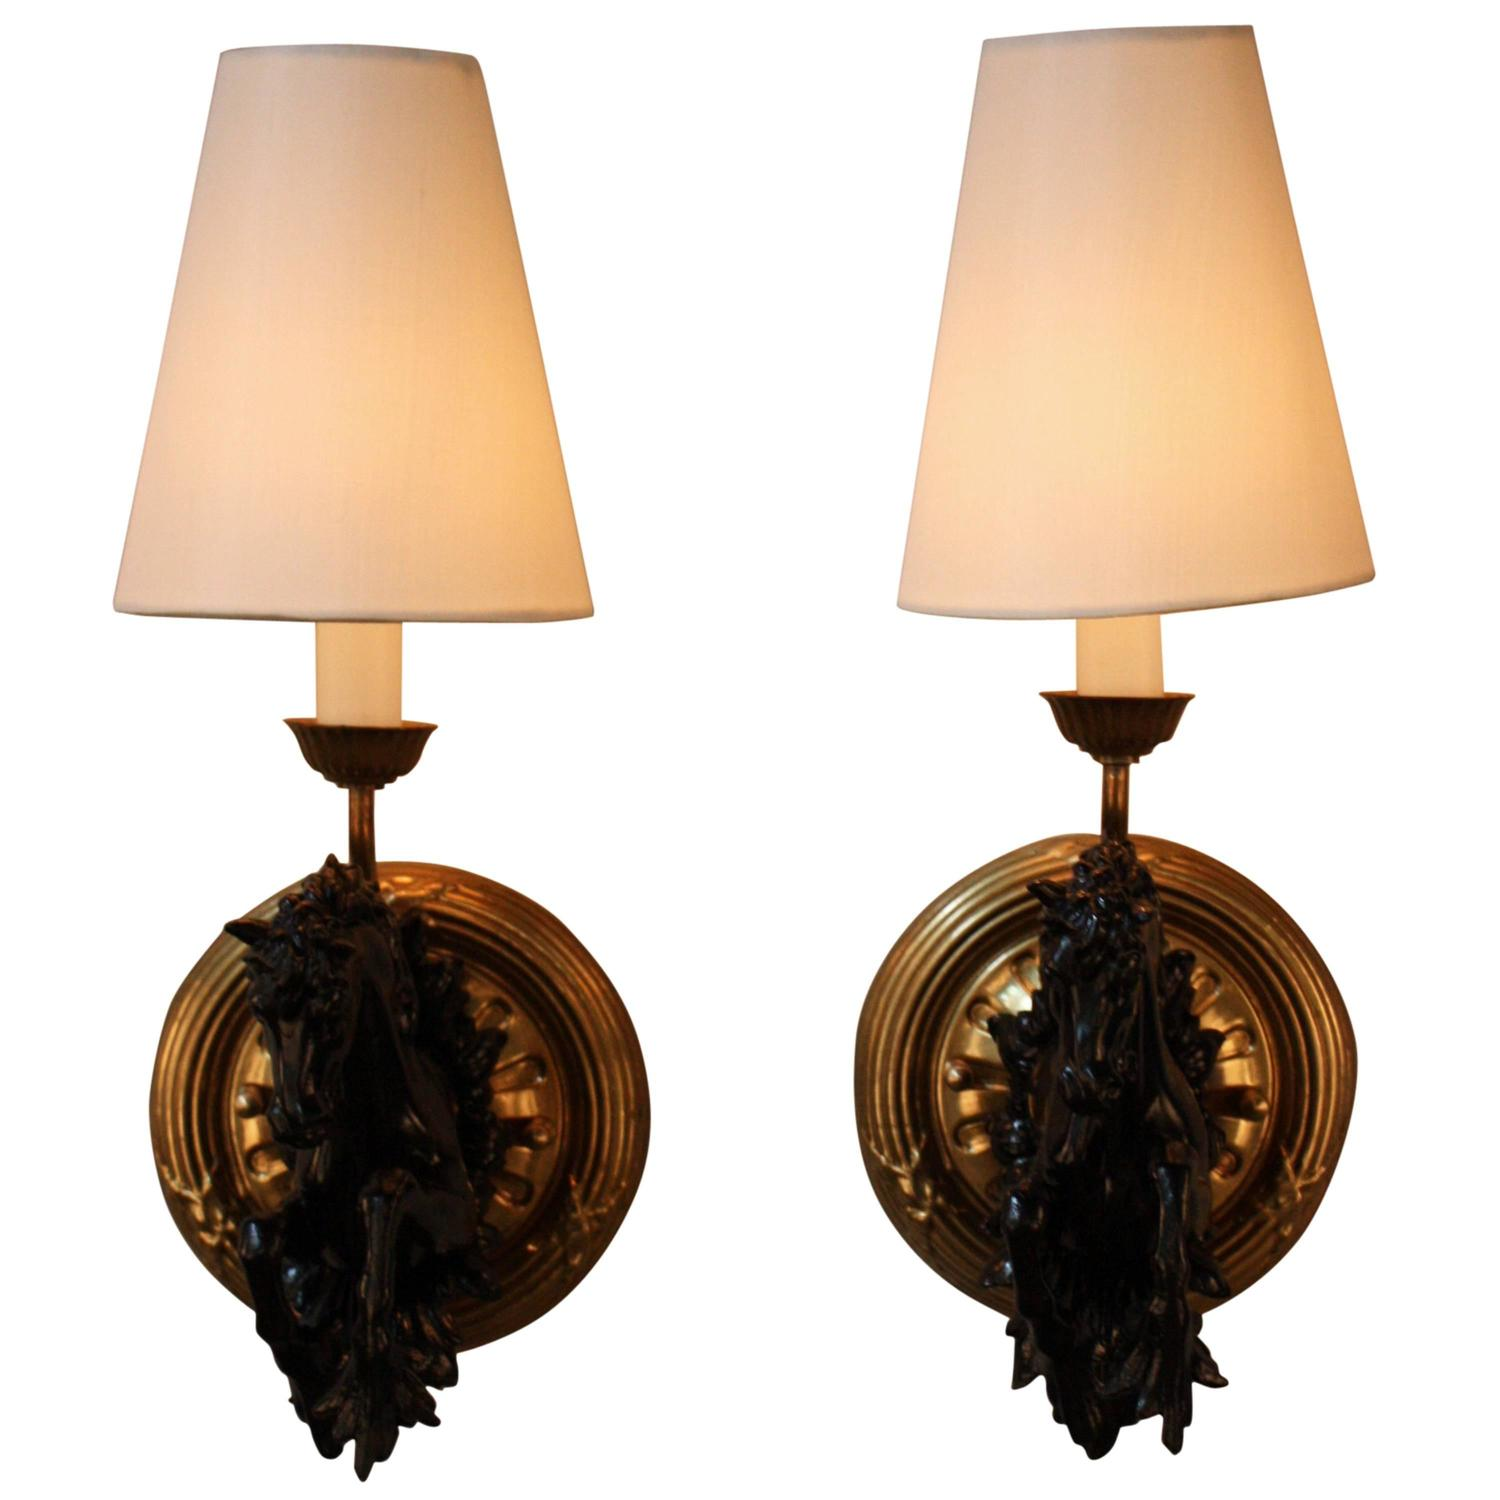 Wall Sconces Equestrian: Pair Of French Running Horse Wall Sconces At 1stdibs